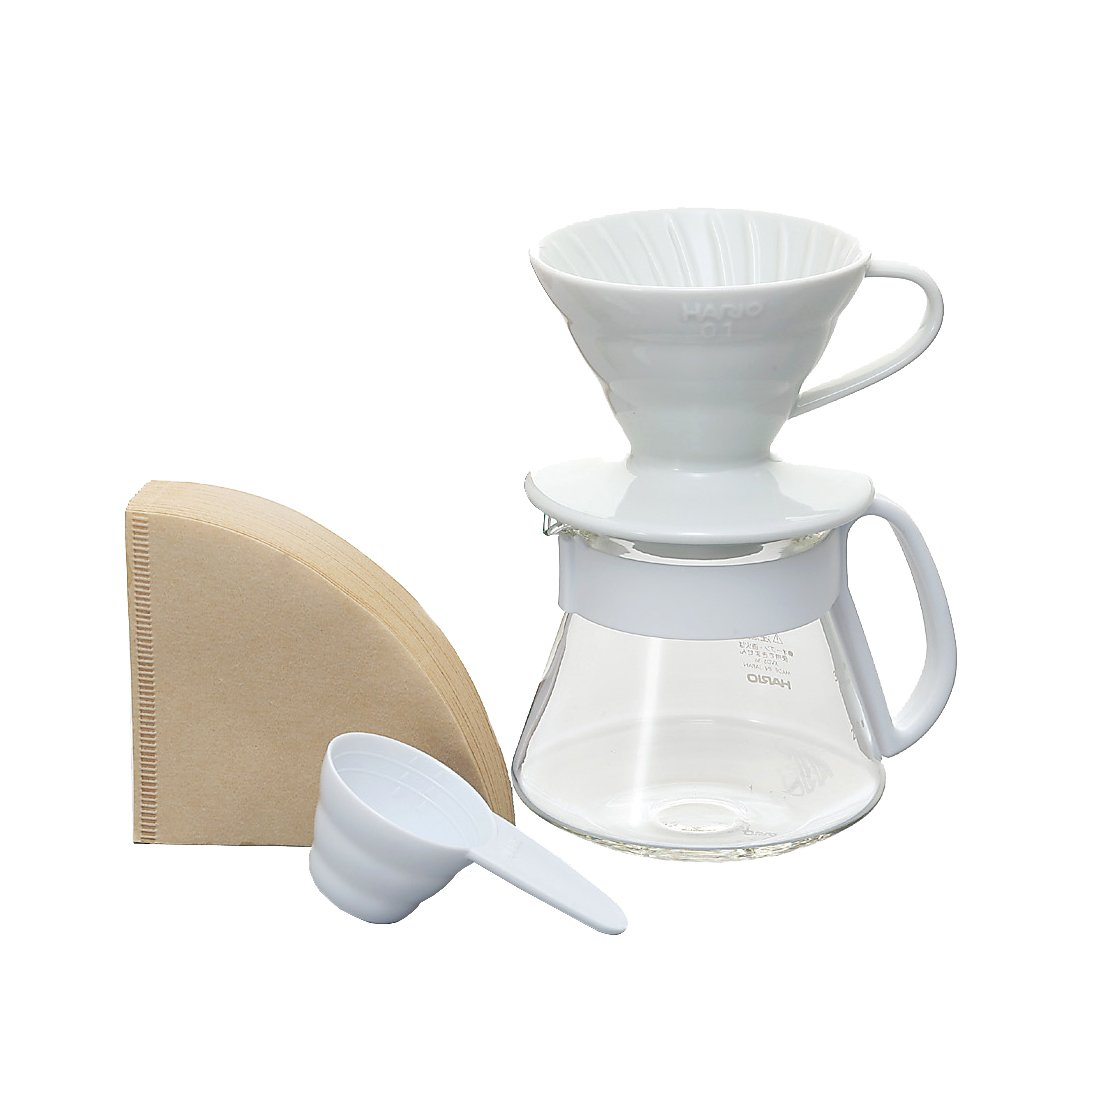 Hario V60 Size 01 Pour Over Set with Ceramic Dripper, Glass Server, Scoop and Filters, White by Hario